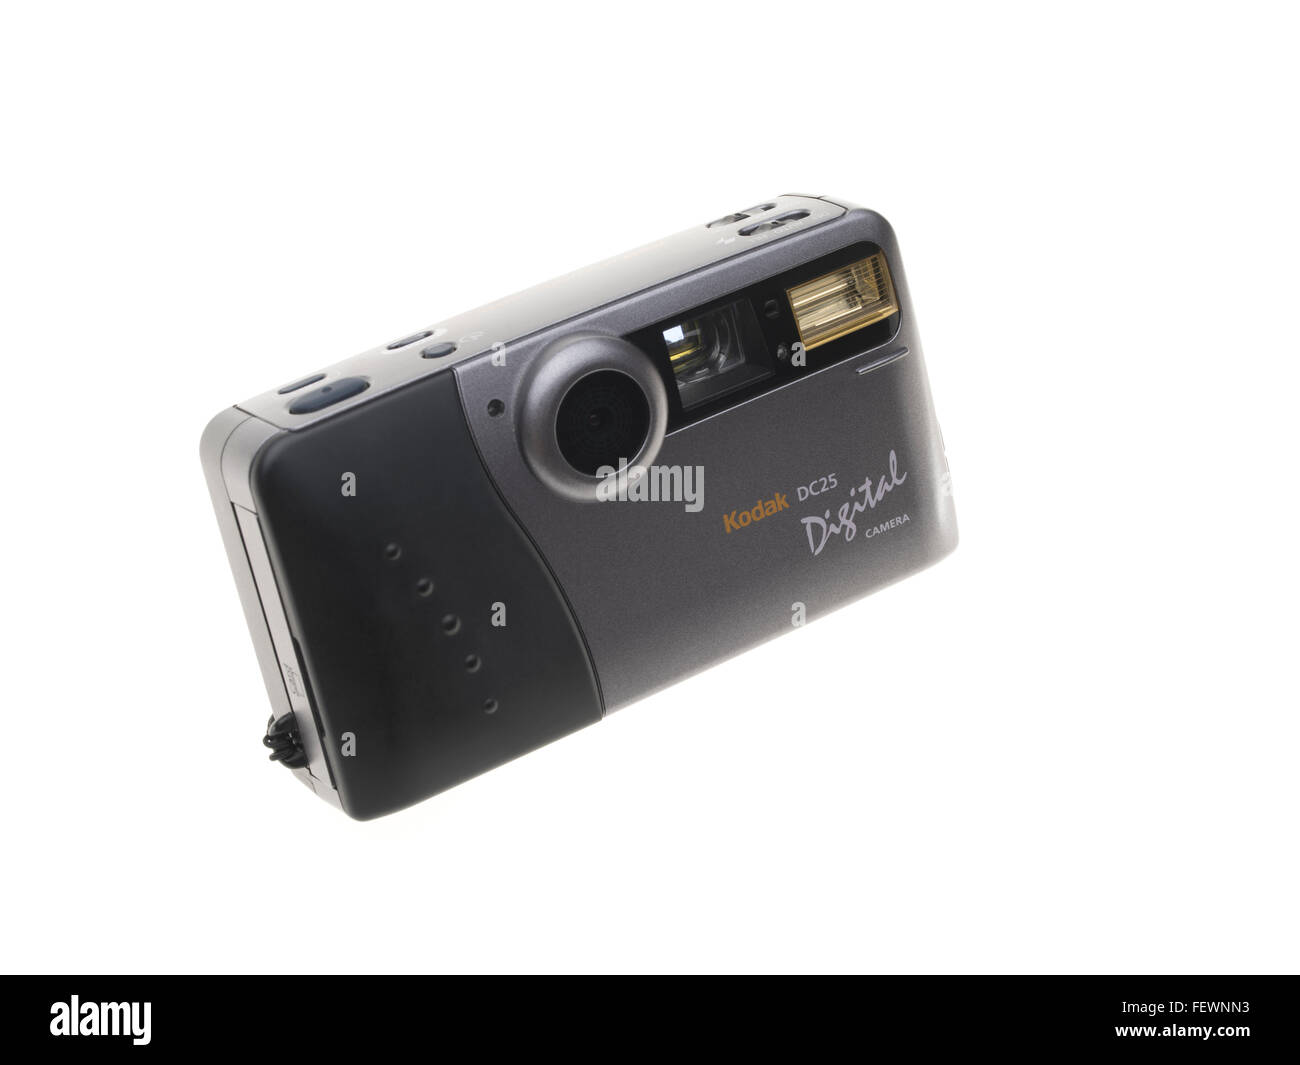 Kodak DC25 digital camera one of the world's first mass consumer digital camera, released in 1996 0.2 megapixel - Stock Image